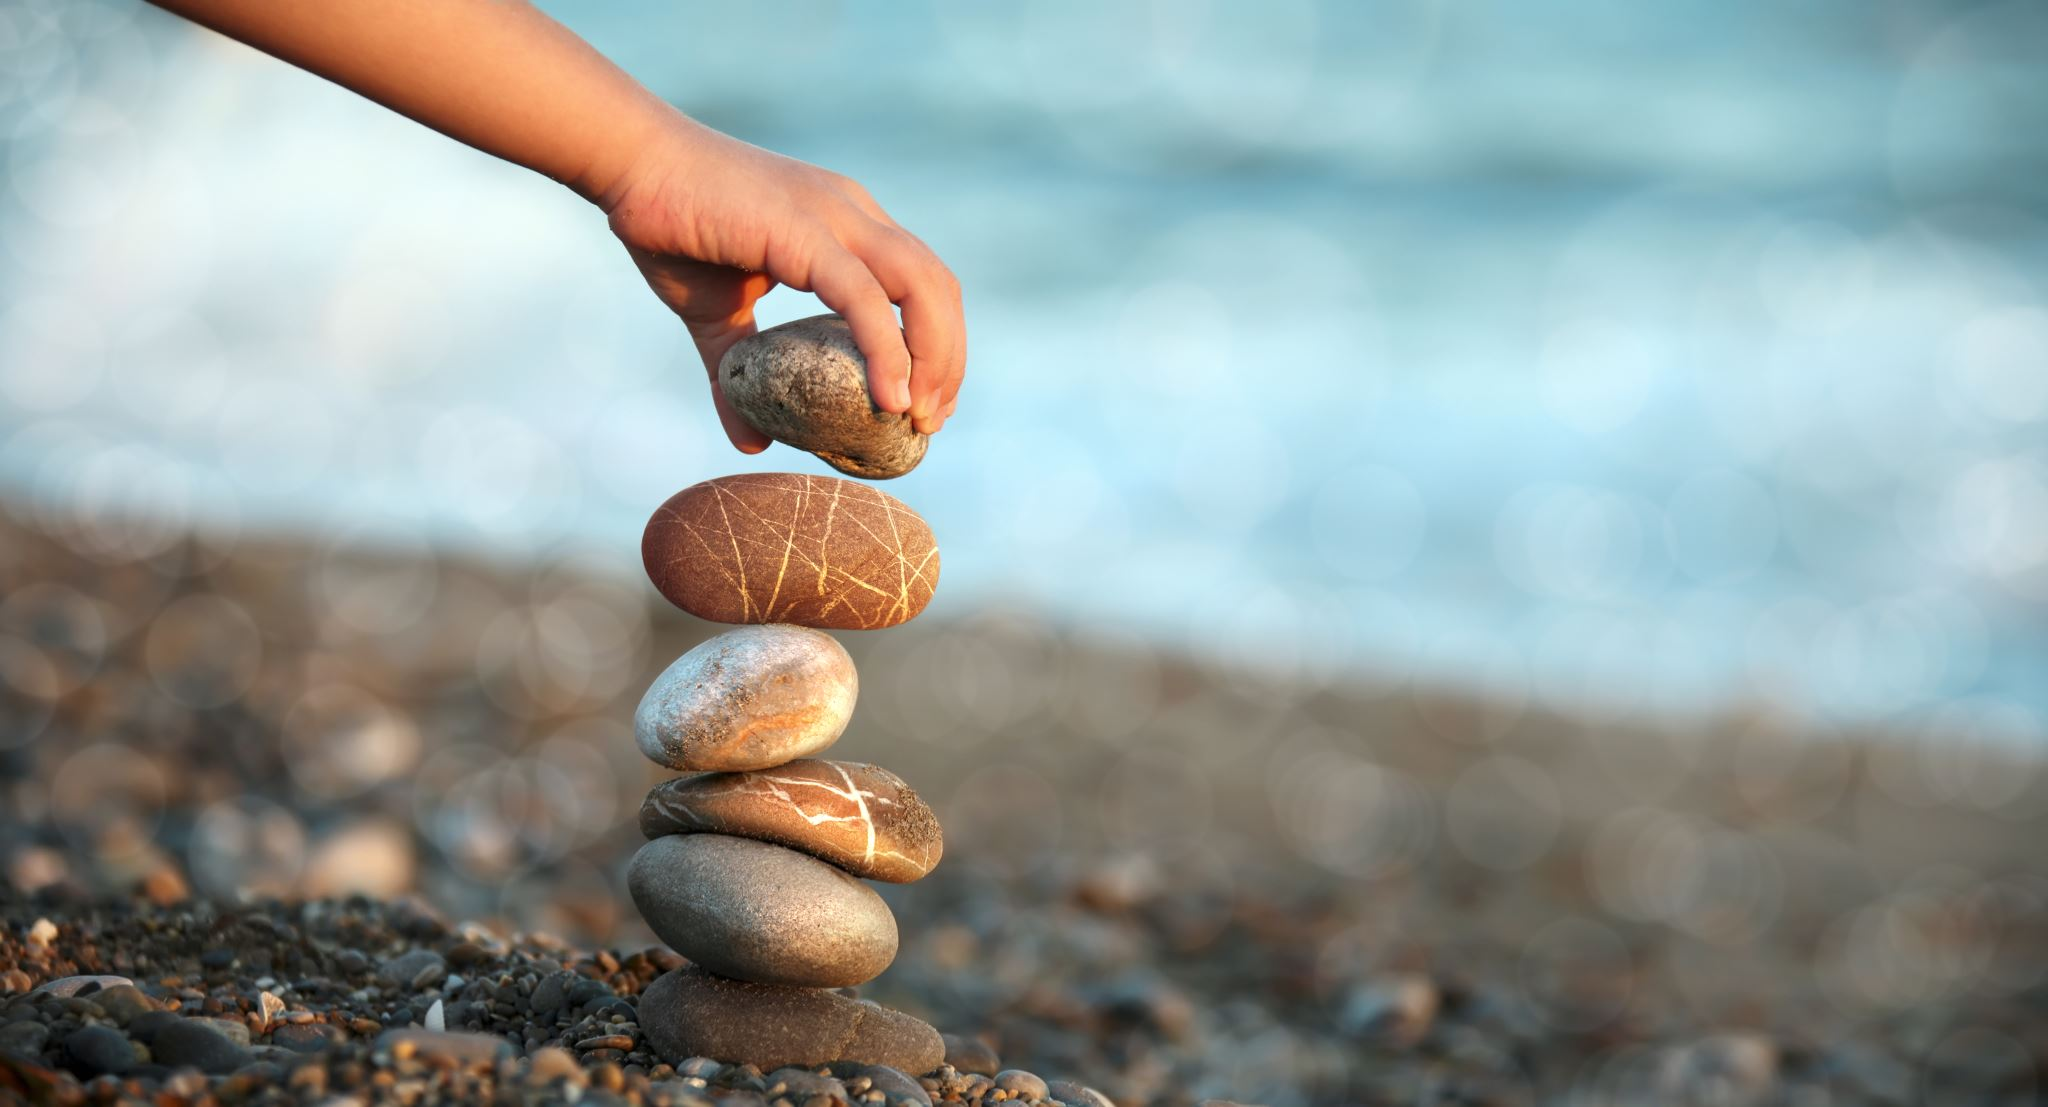 Child stacking rocks on a beach